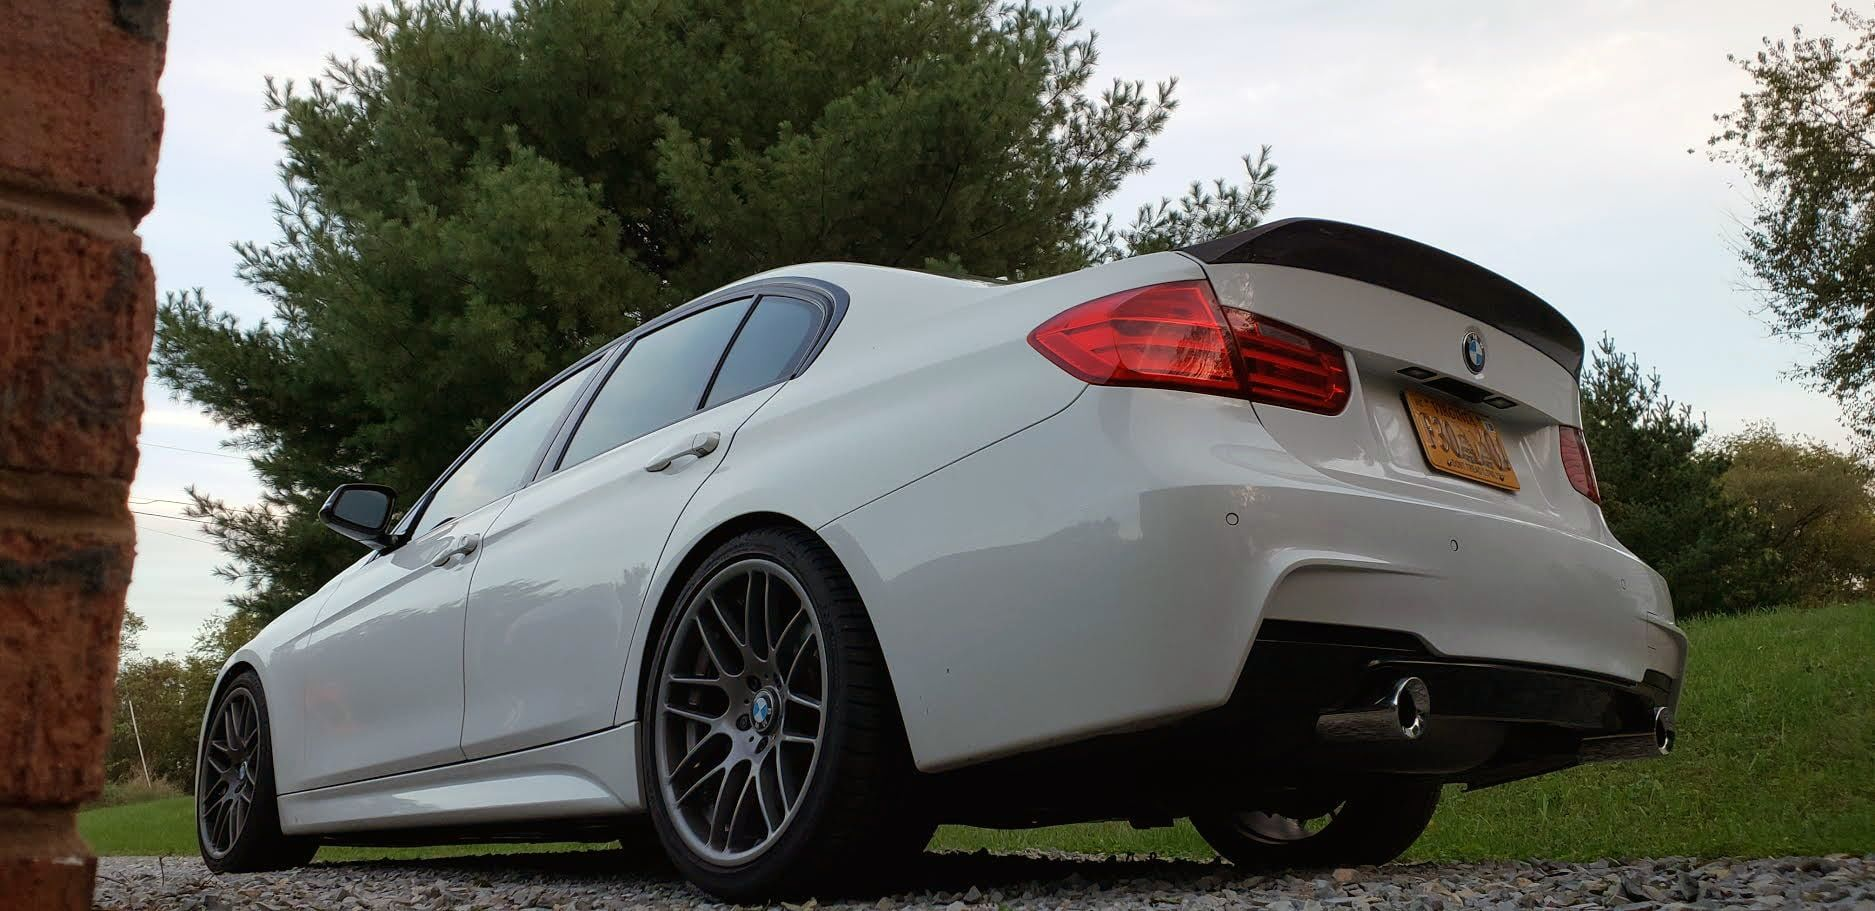 F30 335i with VRSF Exhaust Tips